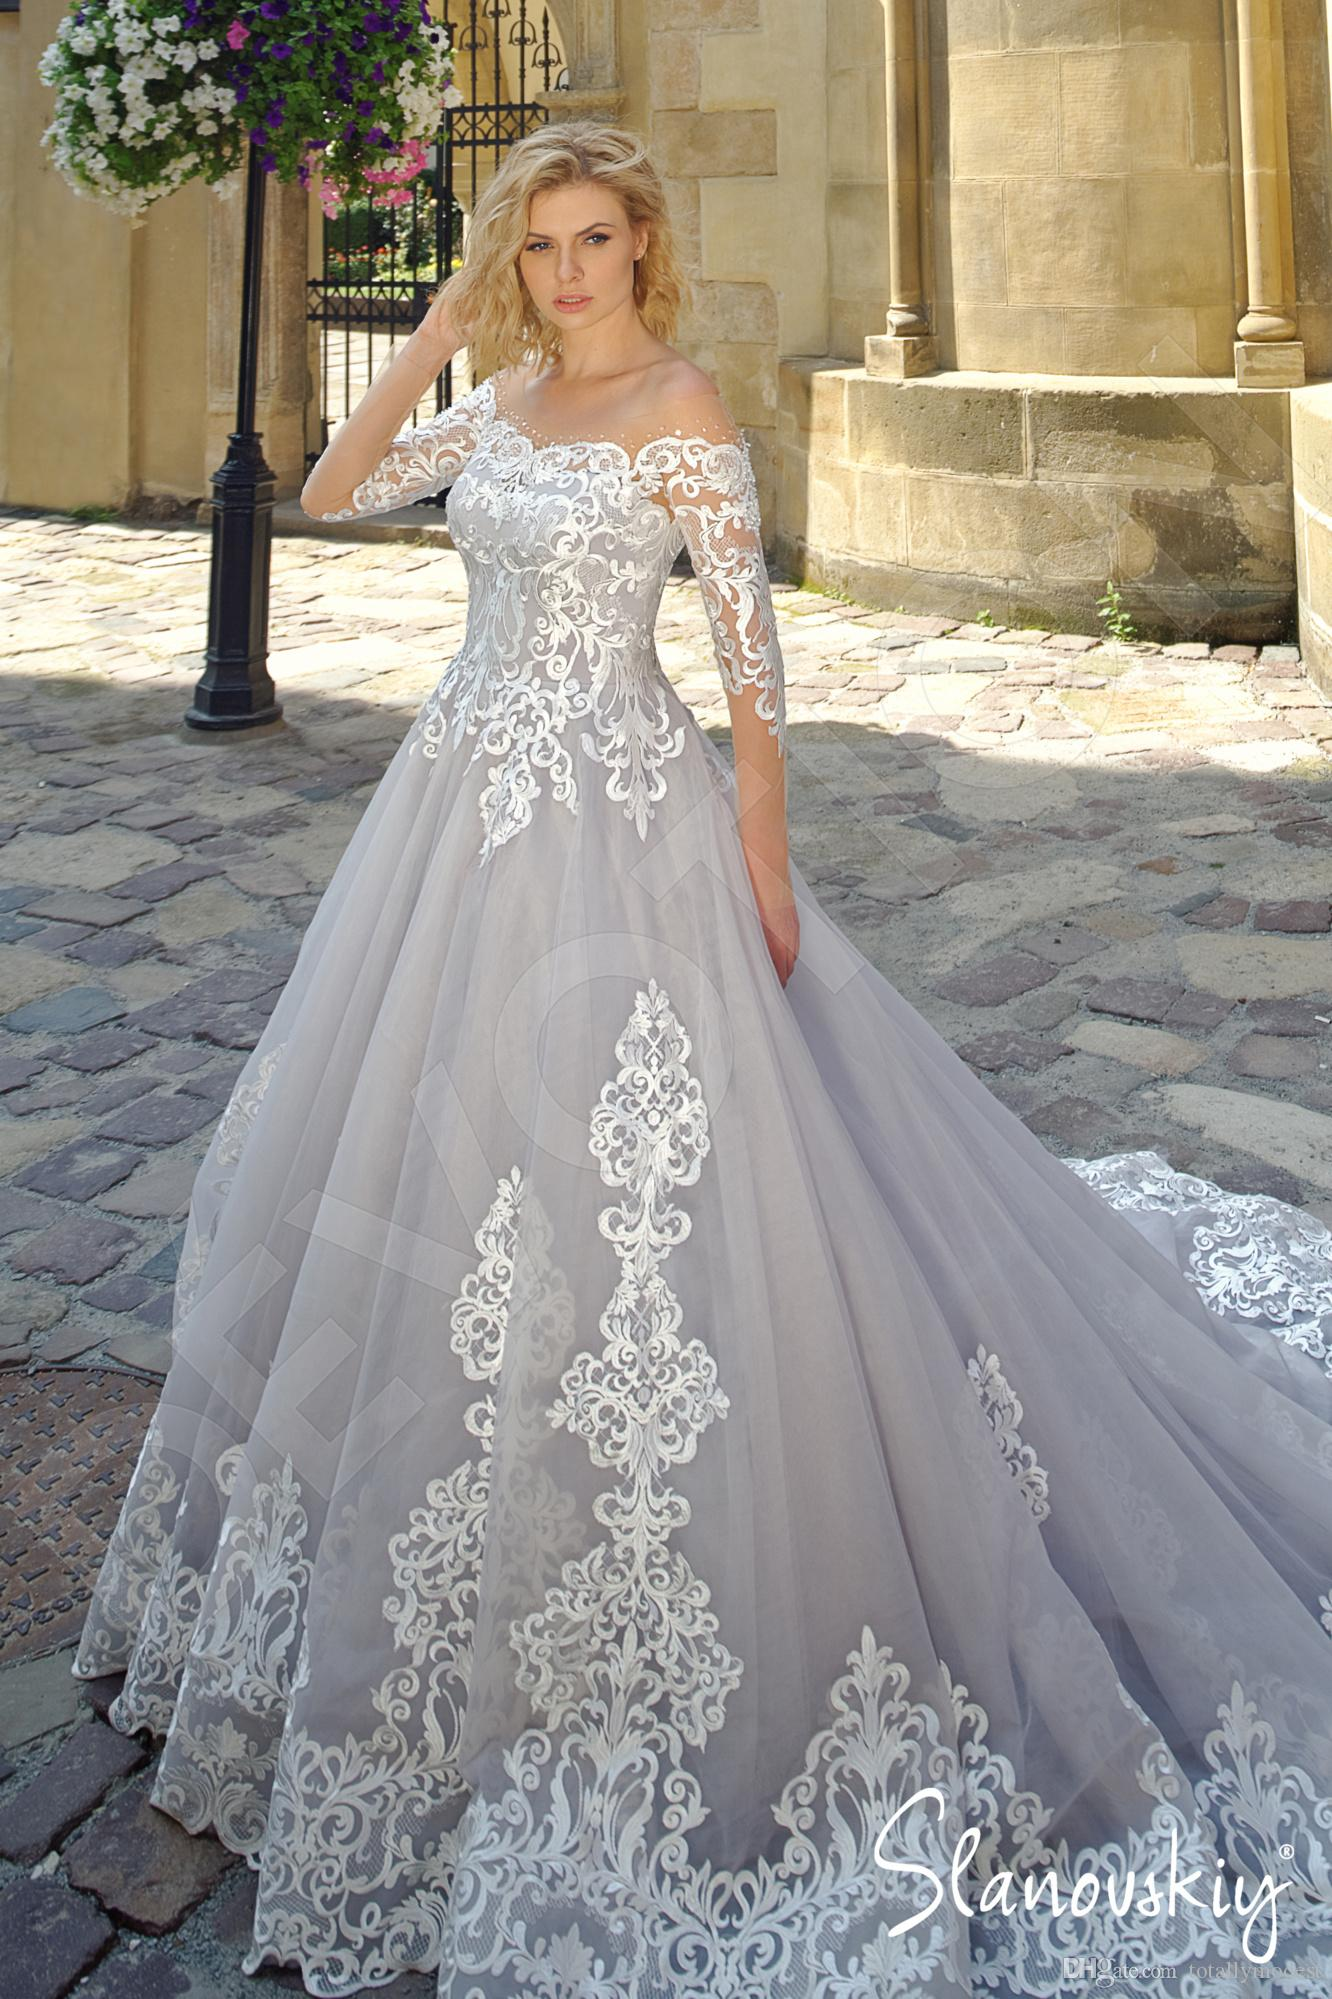 discount silver and ivory wedding dresses with long sleeves 2020 new custom  made sheer illusion top vintage colored wedding gowns non white bridal